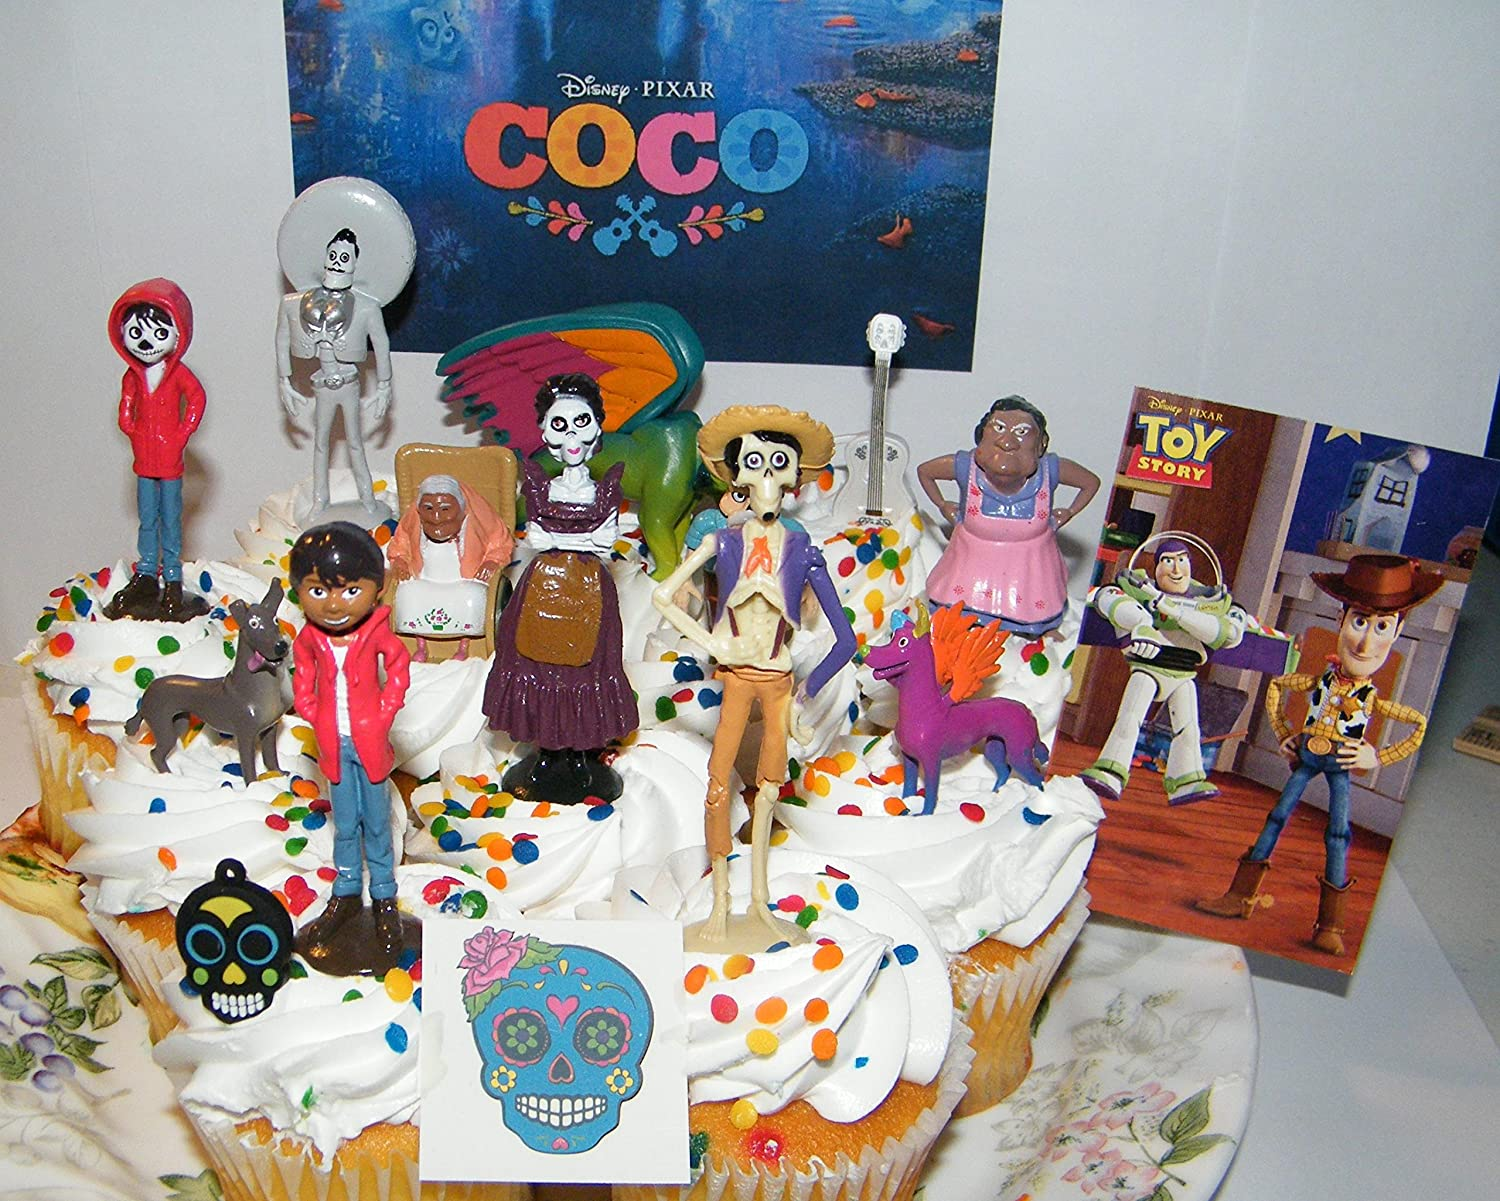 Charm Tattoo and Sticker featuring Miguel Disney Coco Movie Deluxe Cake Toppers Cupcake Decorations Set of 15 with 12 Figures Mama Imelda Spirit Guide and More!